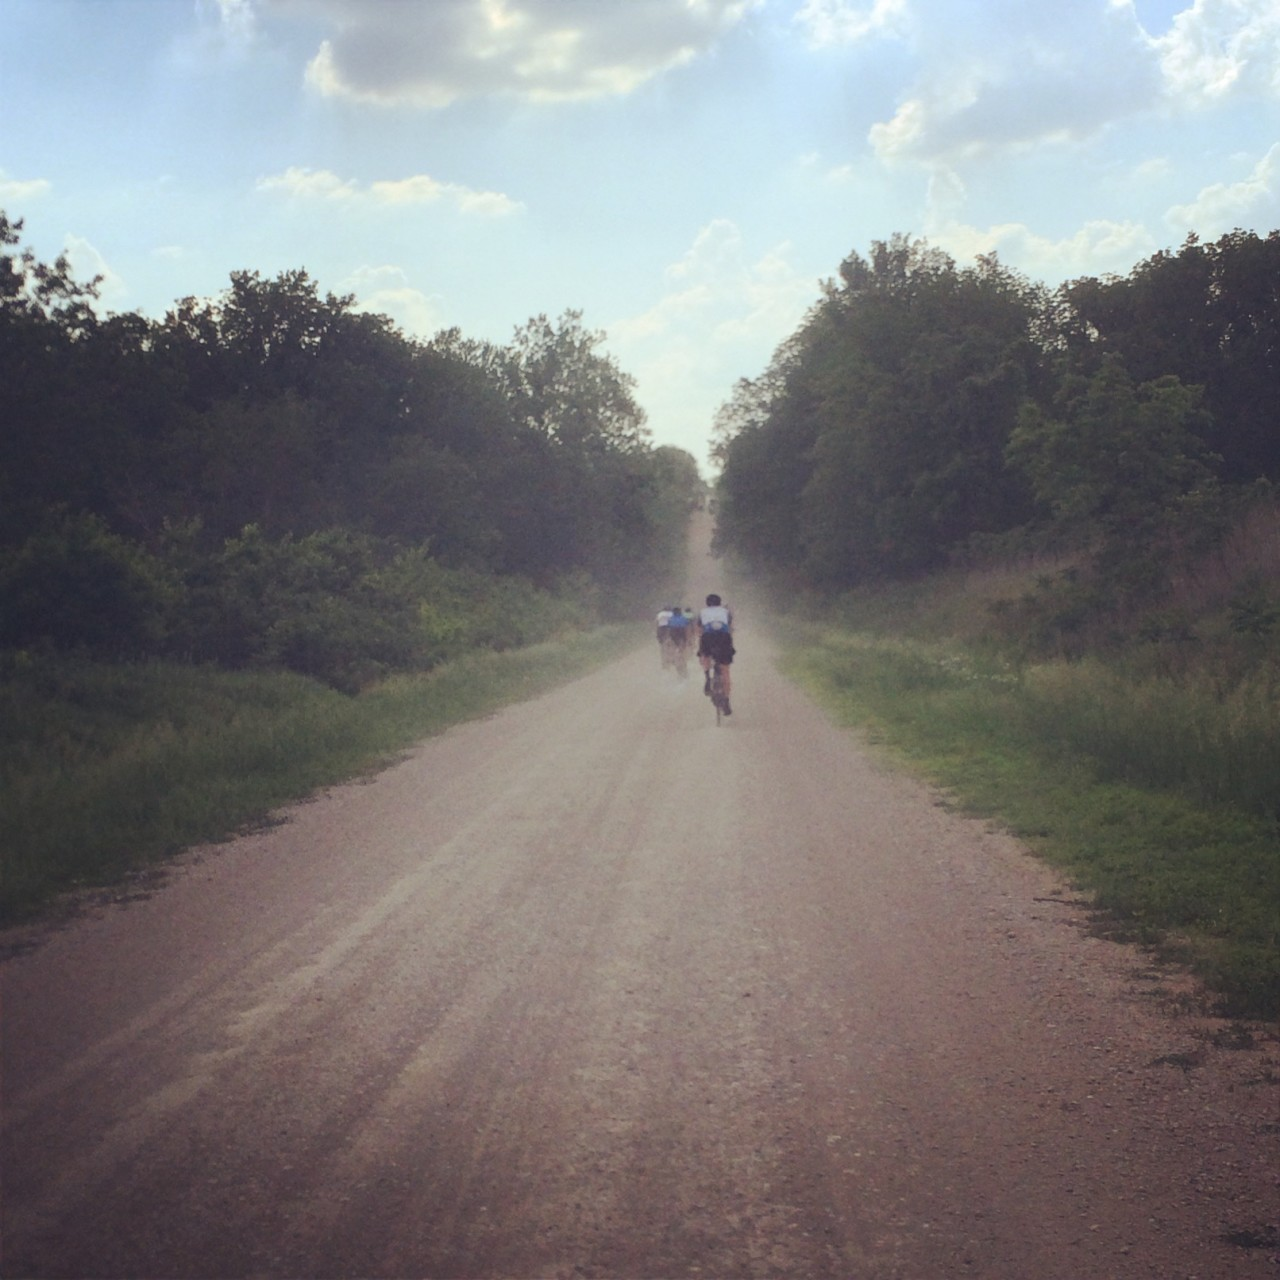 Shakedown ride number 2 in Lawrence, Kansas. Shop ride with Sunflower Outdoor & Bike